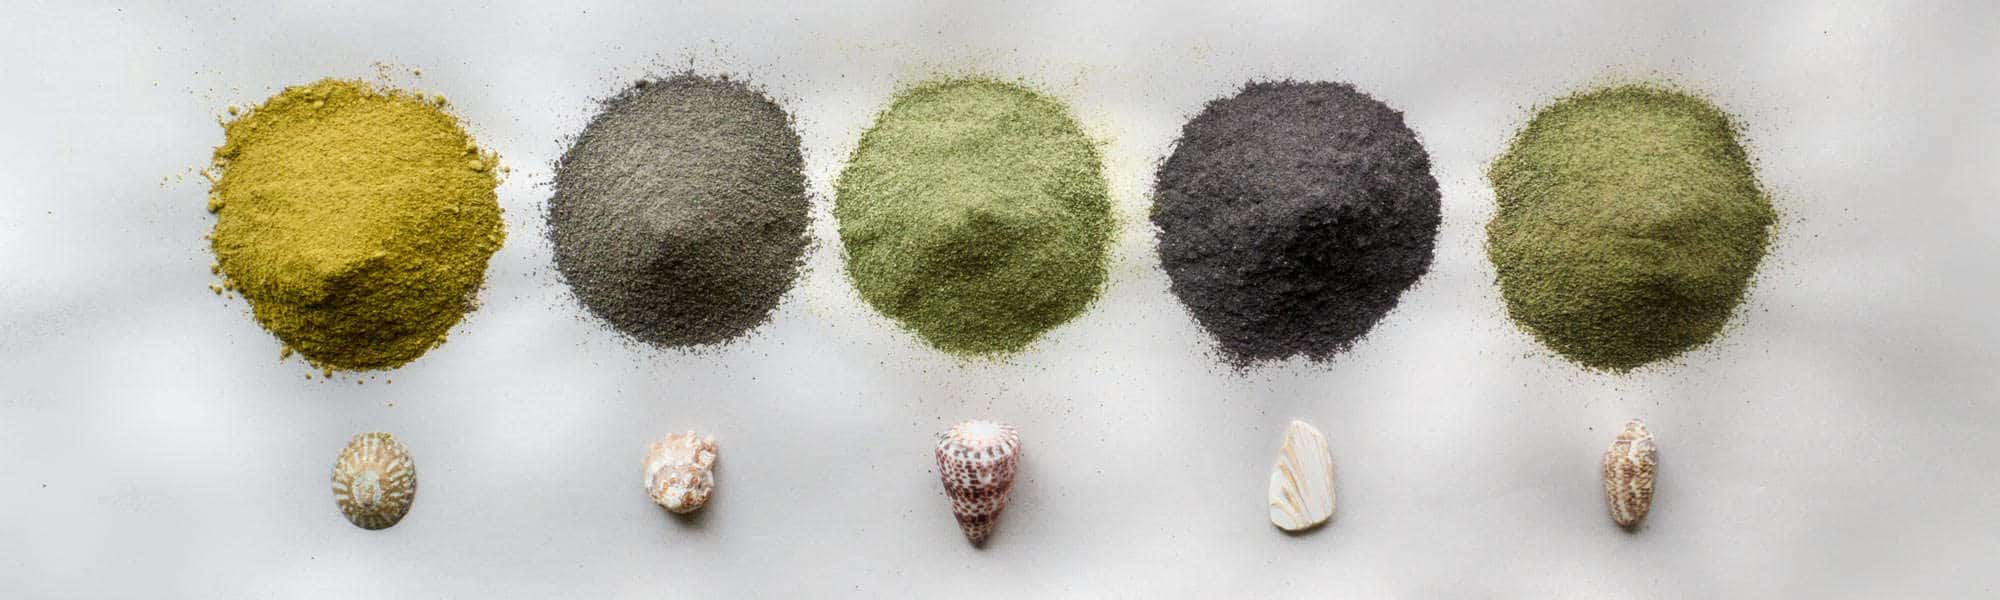 Seaweed Powder Header Image